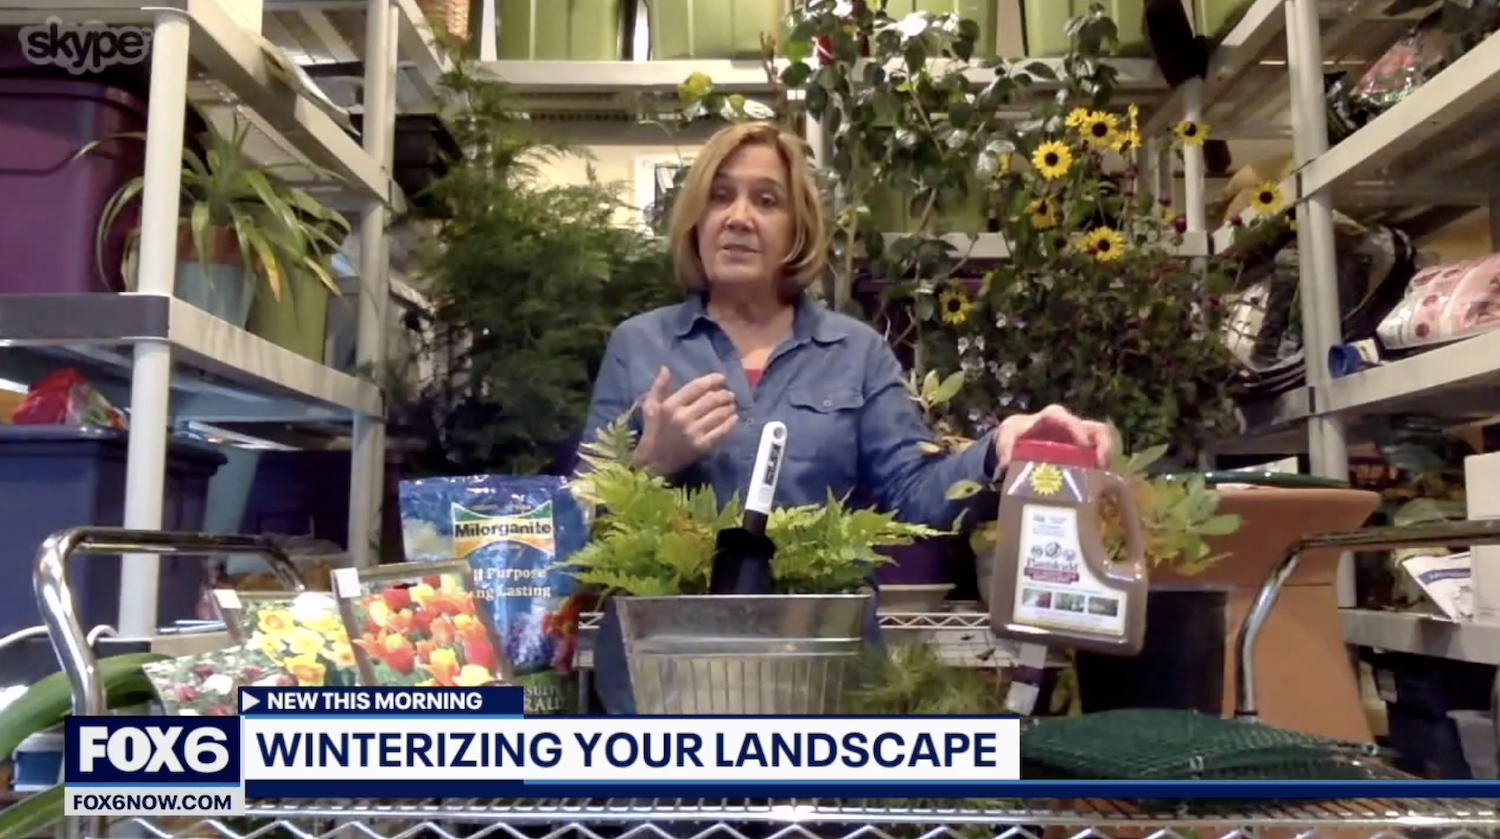 Melinda Myers on FOX6 WakeUp with tips on winterizing your landscape. Use Plantskydd to protect your plants from deer, rabbits and voles overwinter.